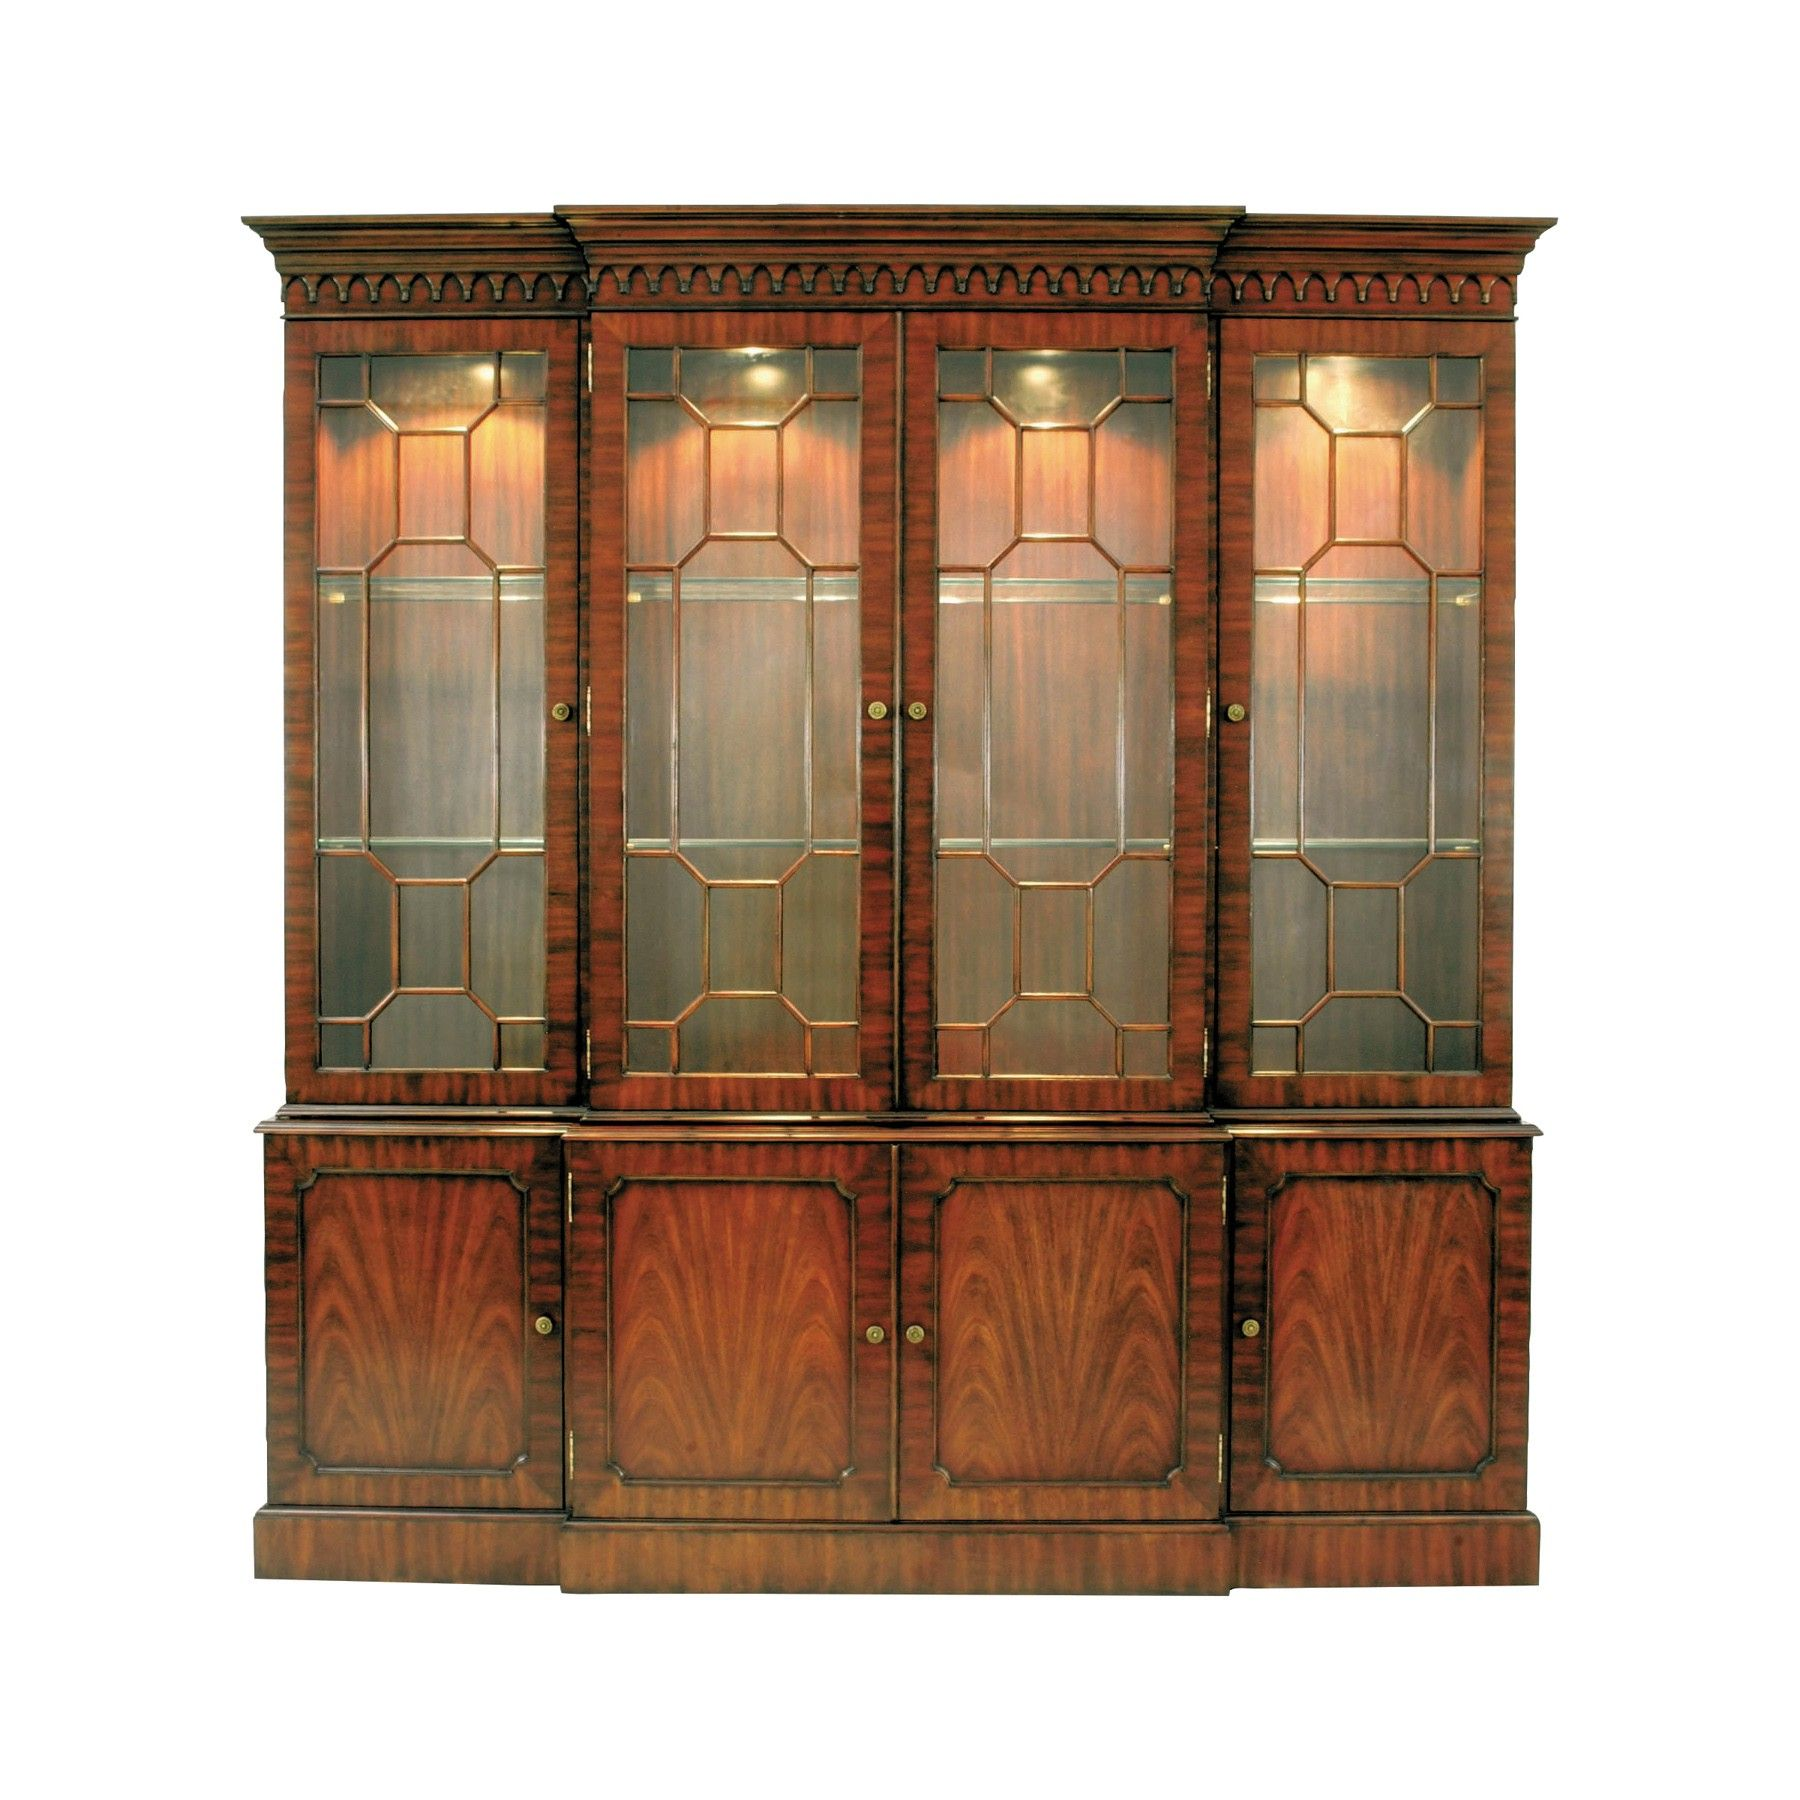 mahogany breakfront lighted china cabinet furniture pinterest glass shelves light antique brass mounts and other dining room cabinets at whitley furniture galleries in raleigh north carolina number of cartons